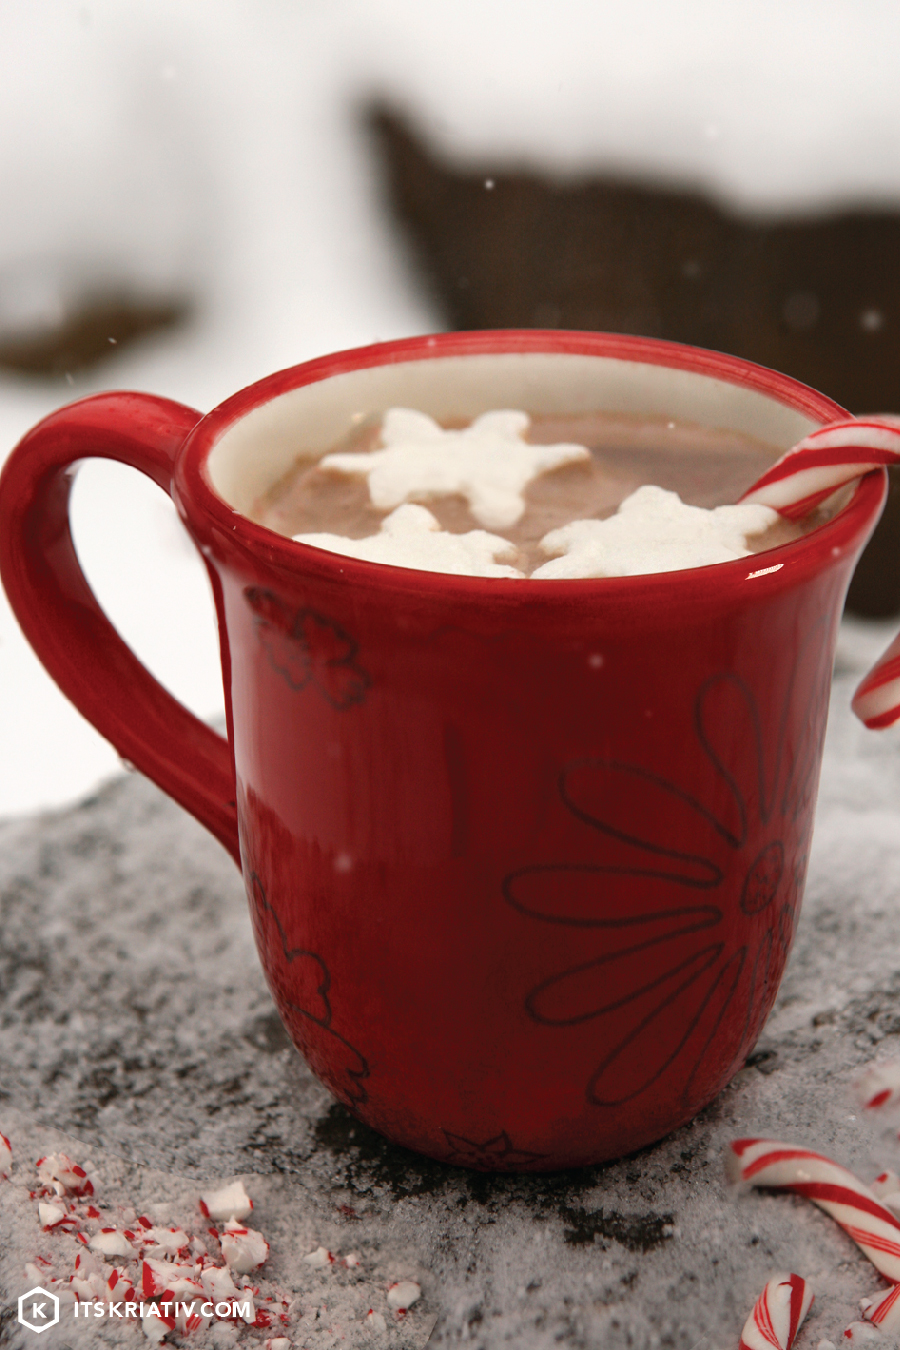 Its-Kriativ-Food-Rum-Peppermint-Hot-Chocolate-Captain-Morgan.jpg